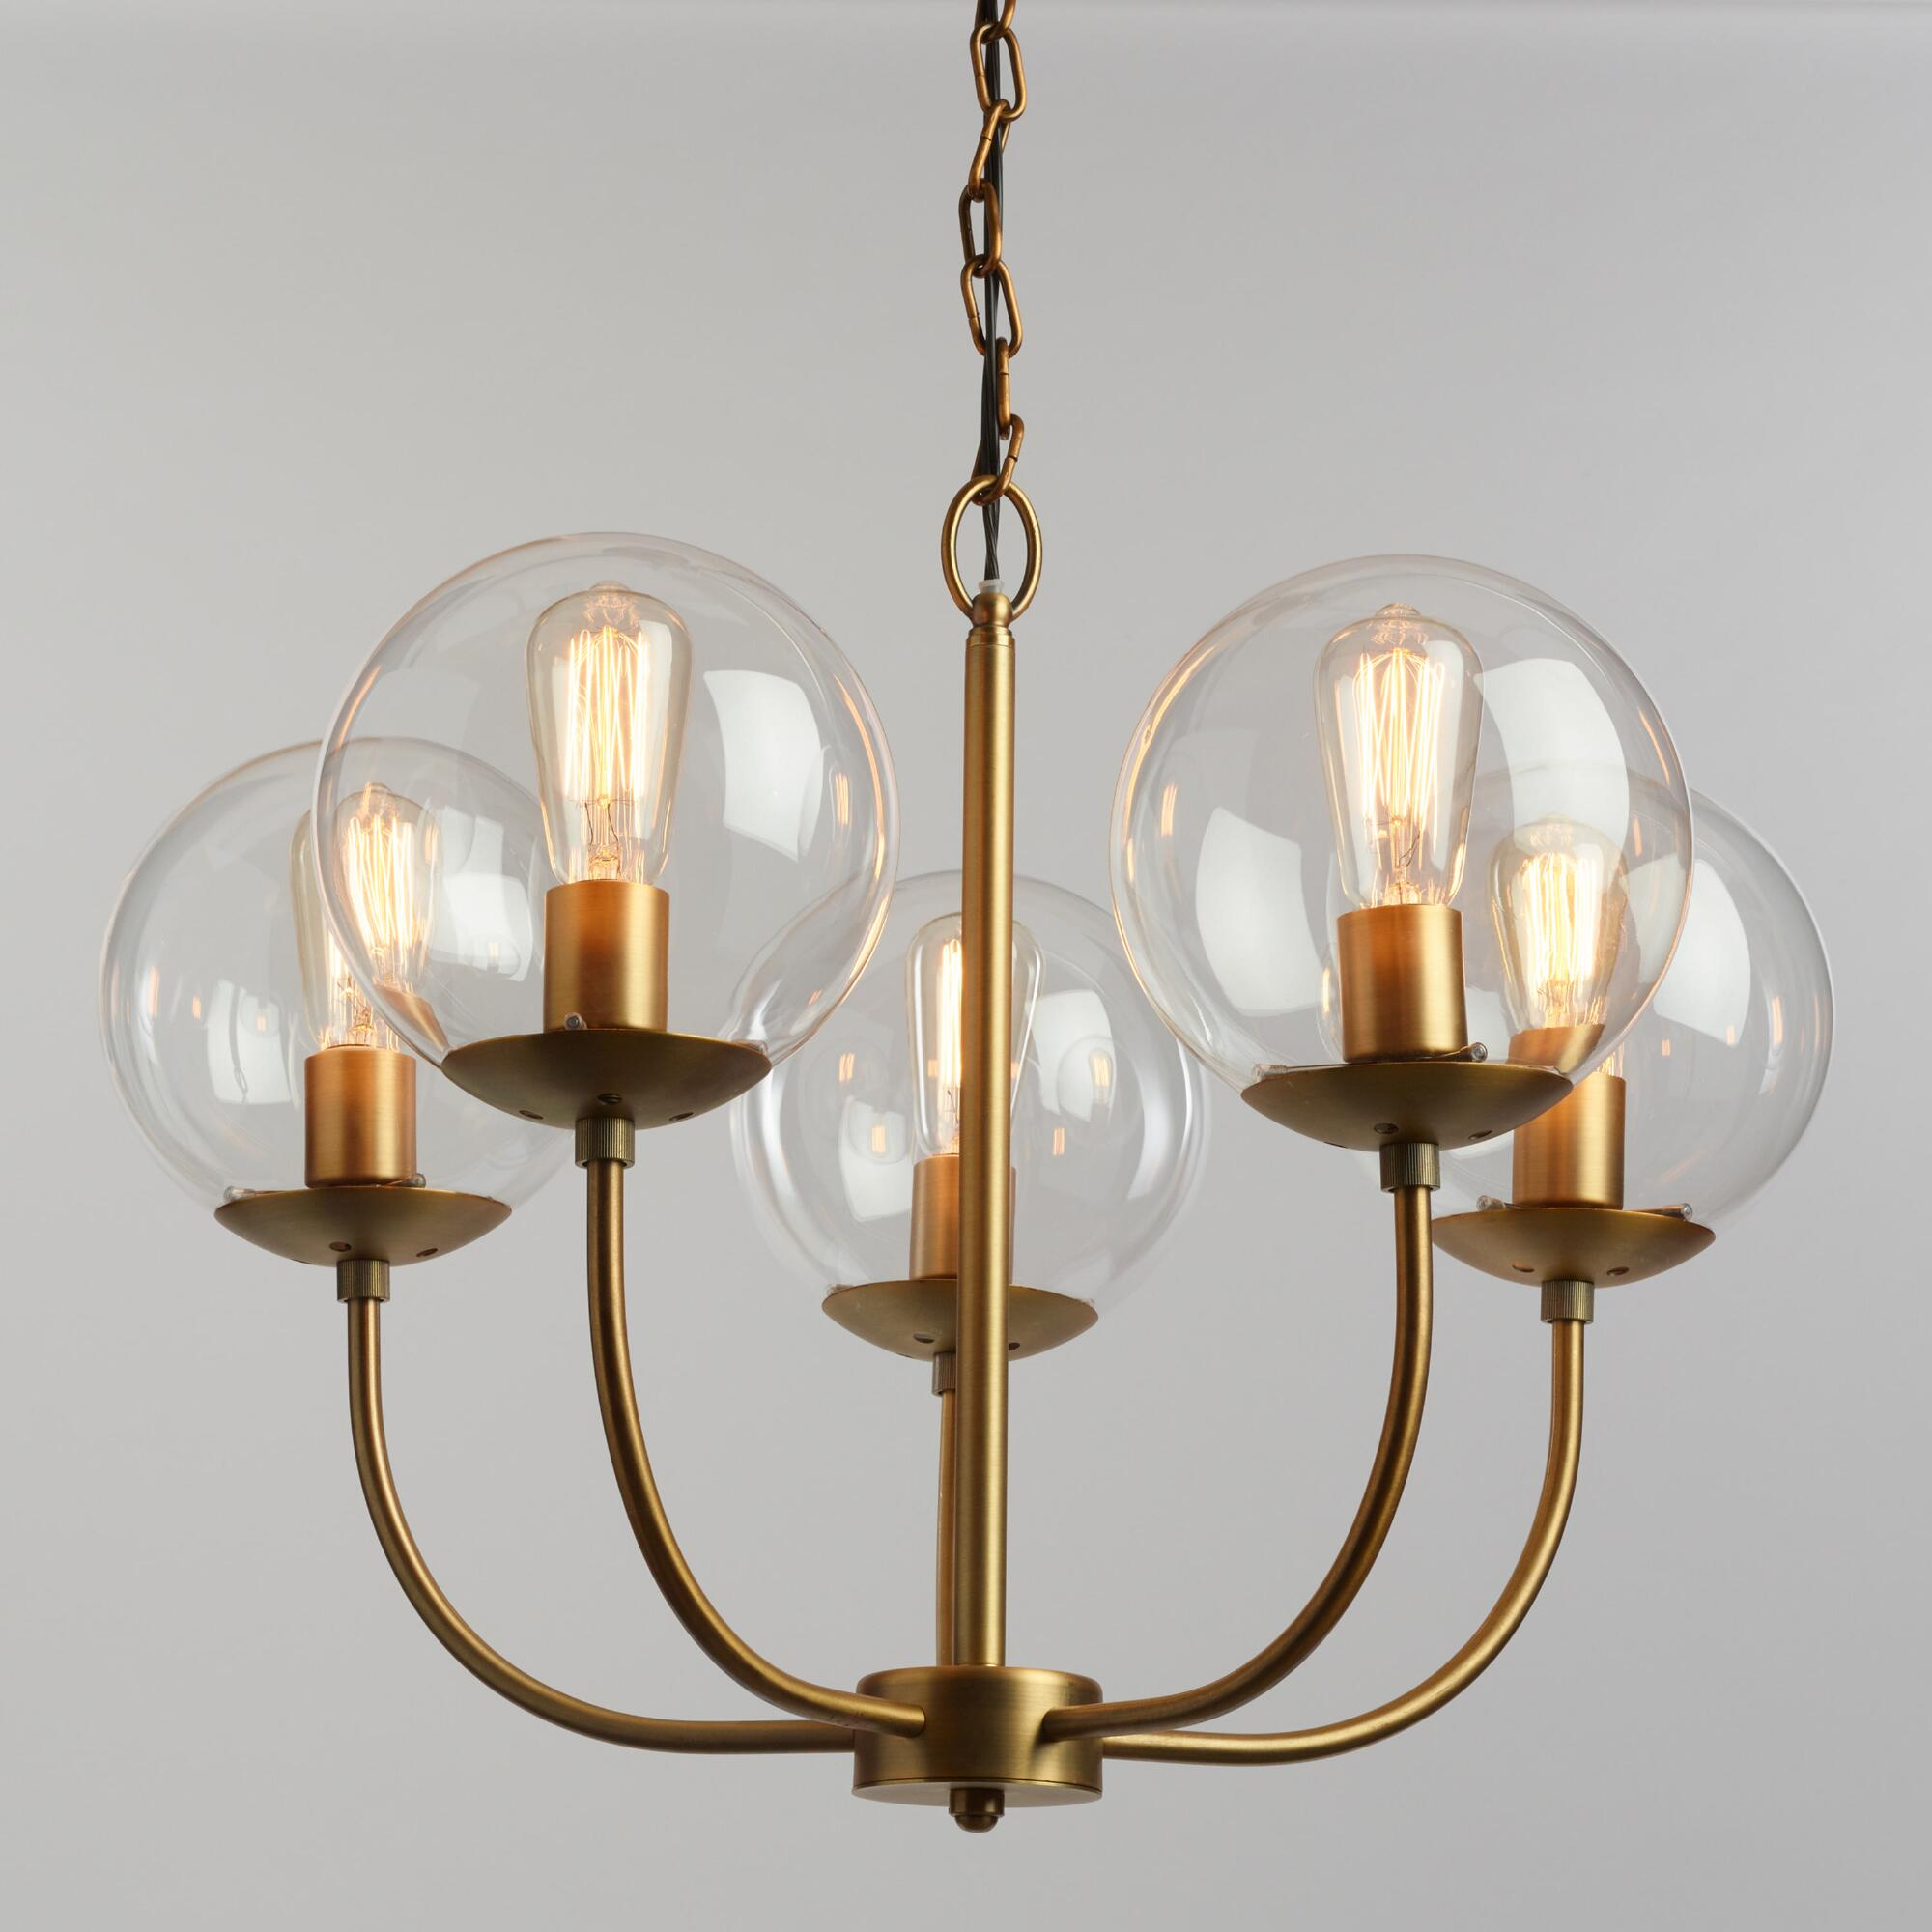 Pendant lighting light fixtures chandeliers world market antique brass and glass globe 5 light alessa chandelier arubaitofo Gallery